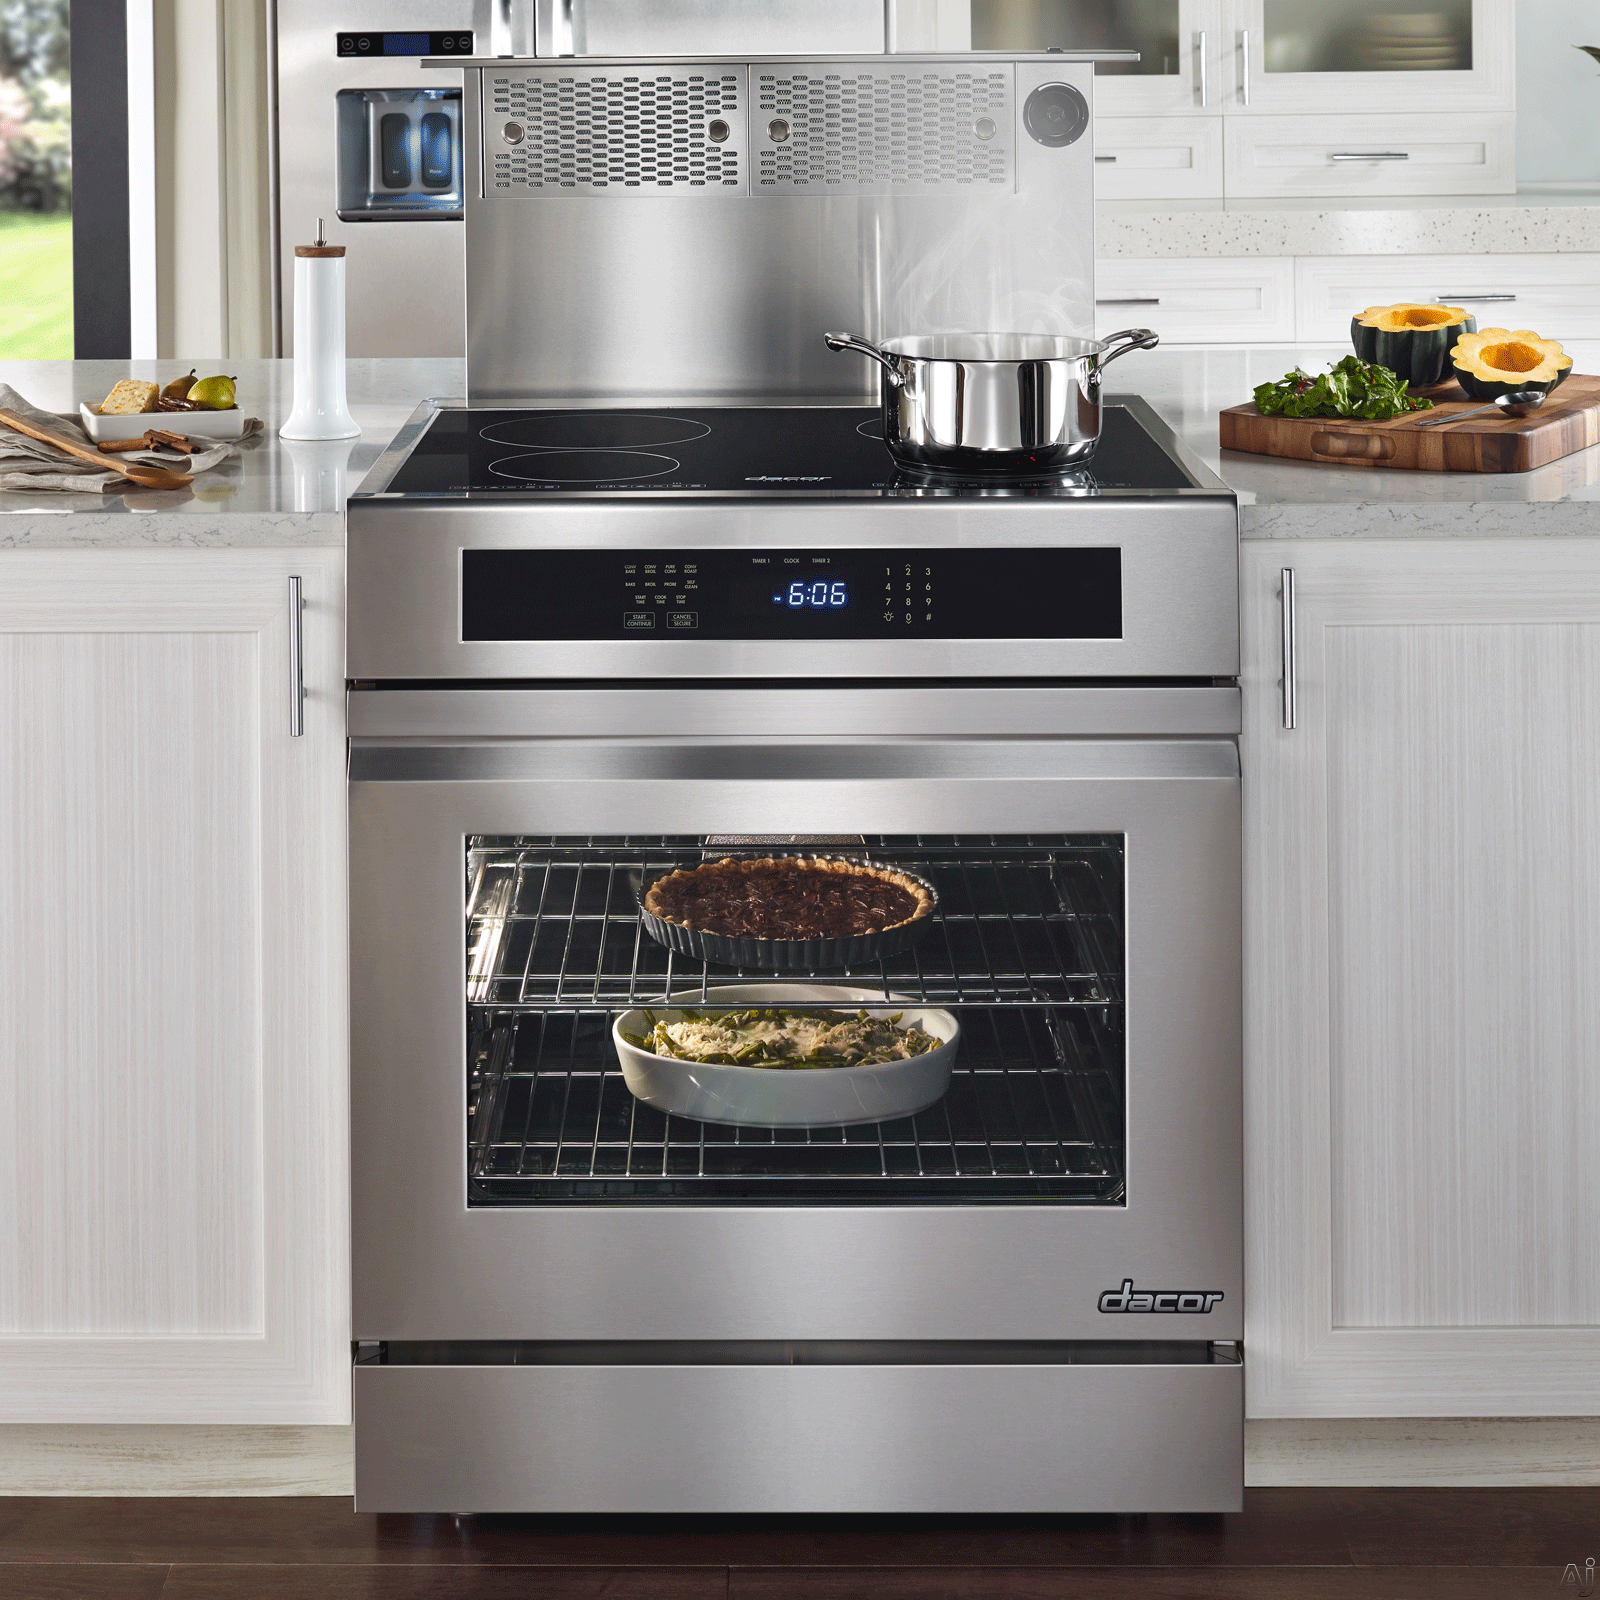 "Dacor Renaissance RNR30NIC 30"" Slide-in Electric Range with 4 Induction Elements, 2,800 W Element, 4.8 cu. ft. Convection Oven, Hidden Bake Element and GreenClean Self Clean Cycle: Epicure Handle, Color Match"